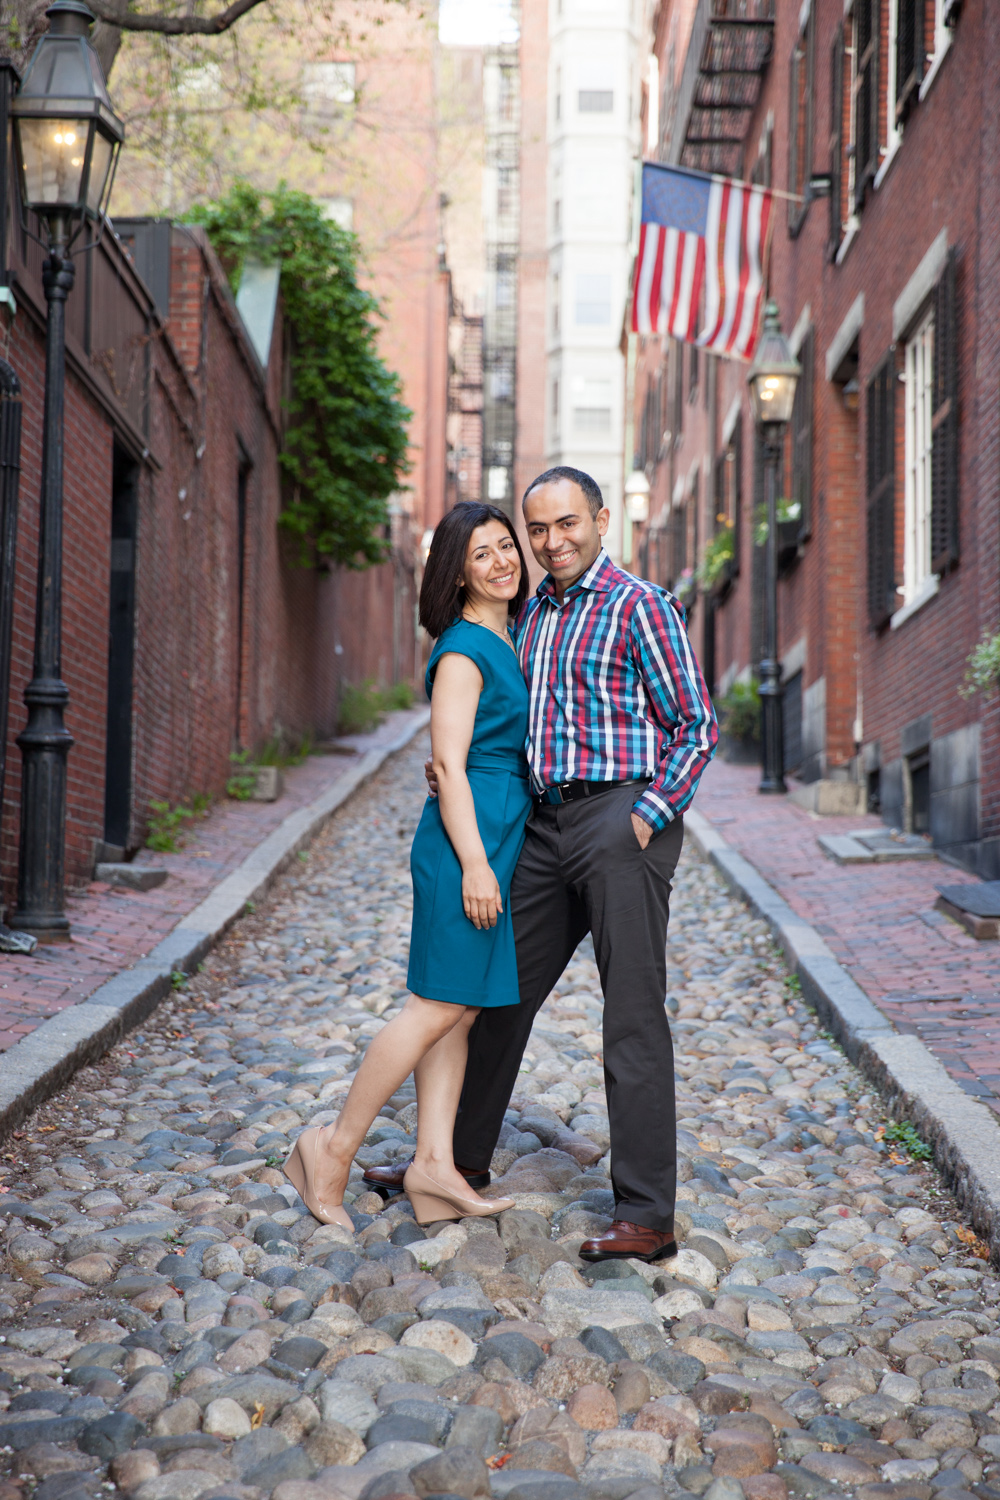 beautiful-couple-anniversary-photo-acorn-alley-beacon-hill-boston.jpg